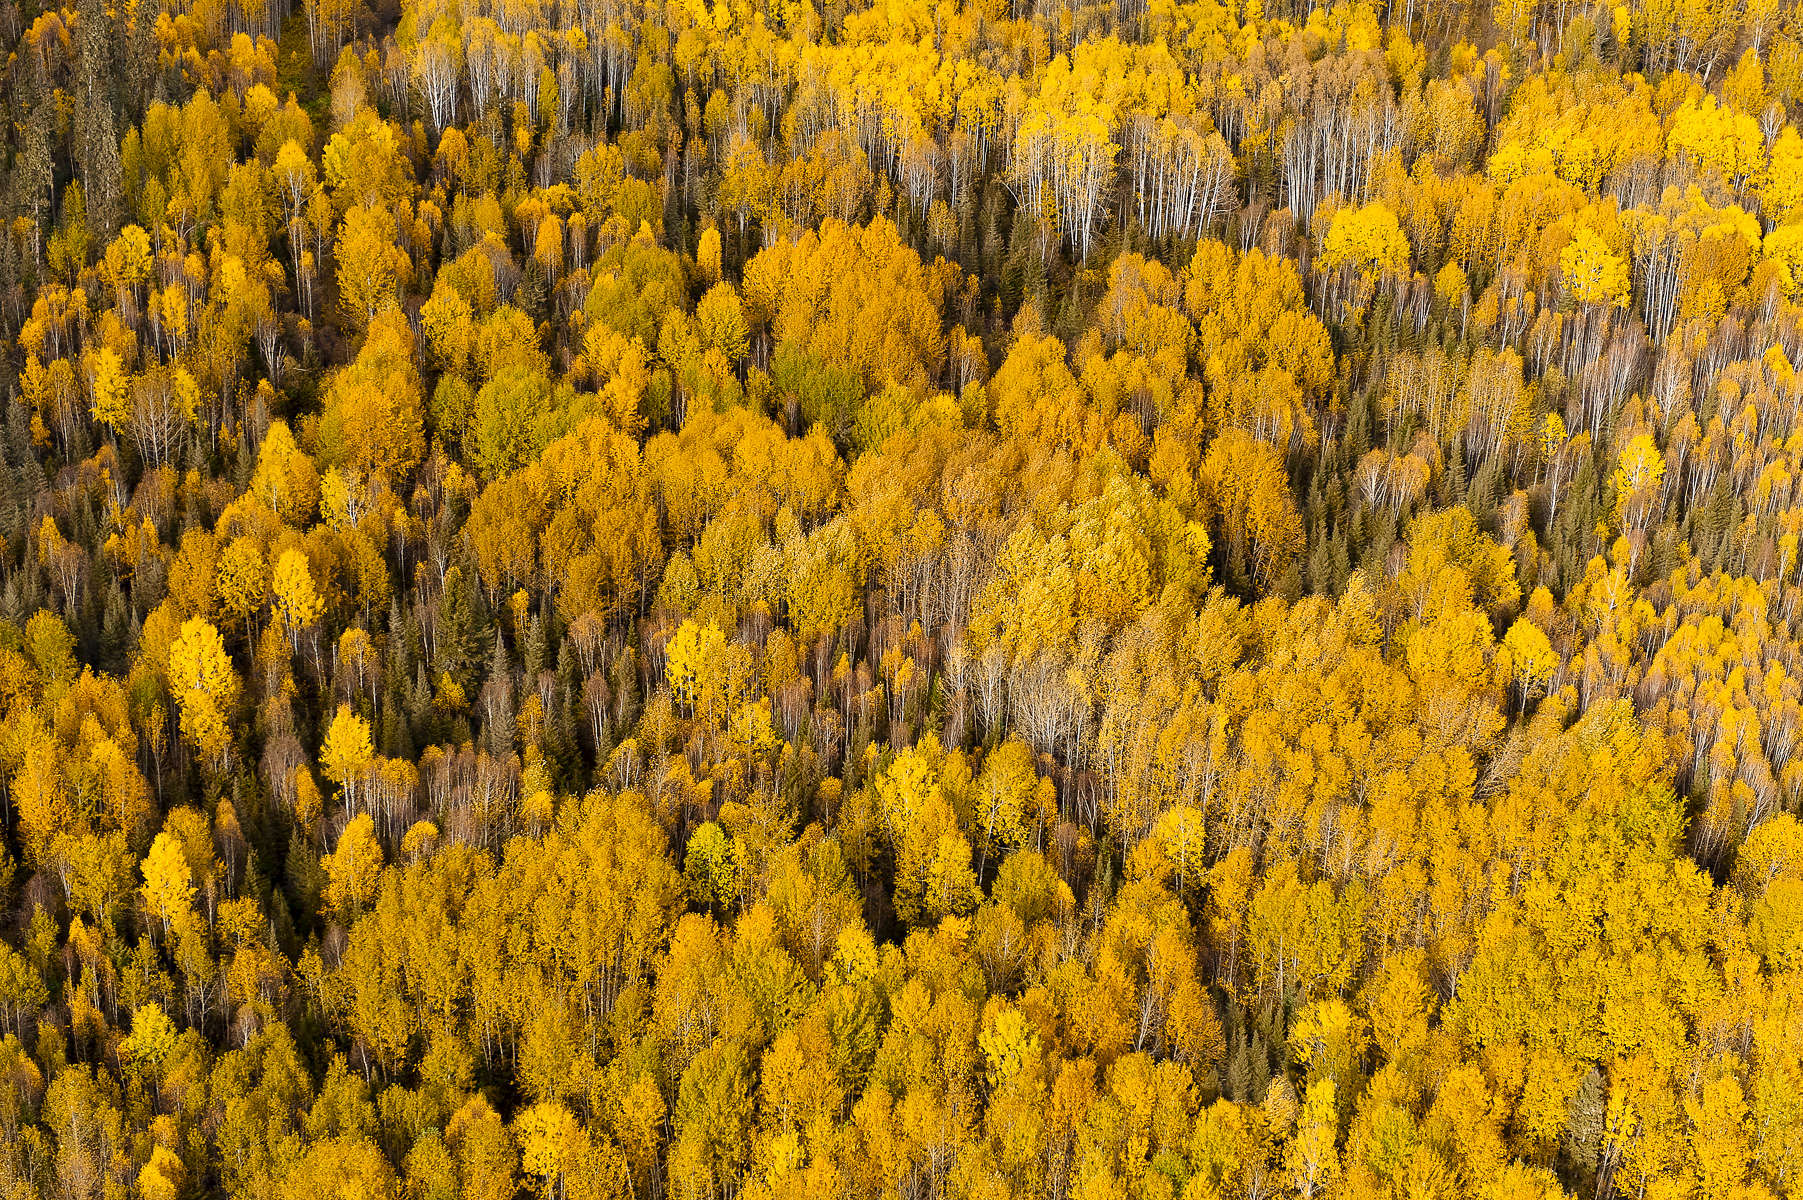 Located immediately adjacent to a massive tar mine, forests and wetlands like this are key habitat for a variety of species. The Canadian Boreal is the breeding ground and nursery for almost half of all bird species found in North America.